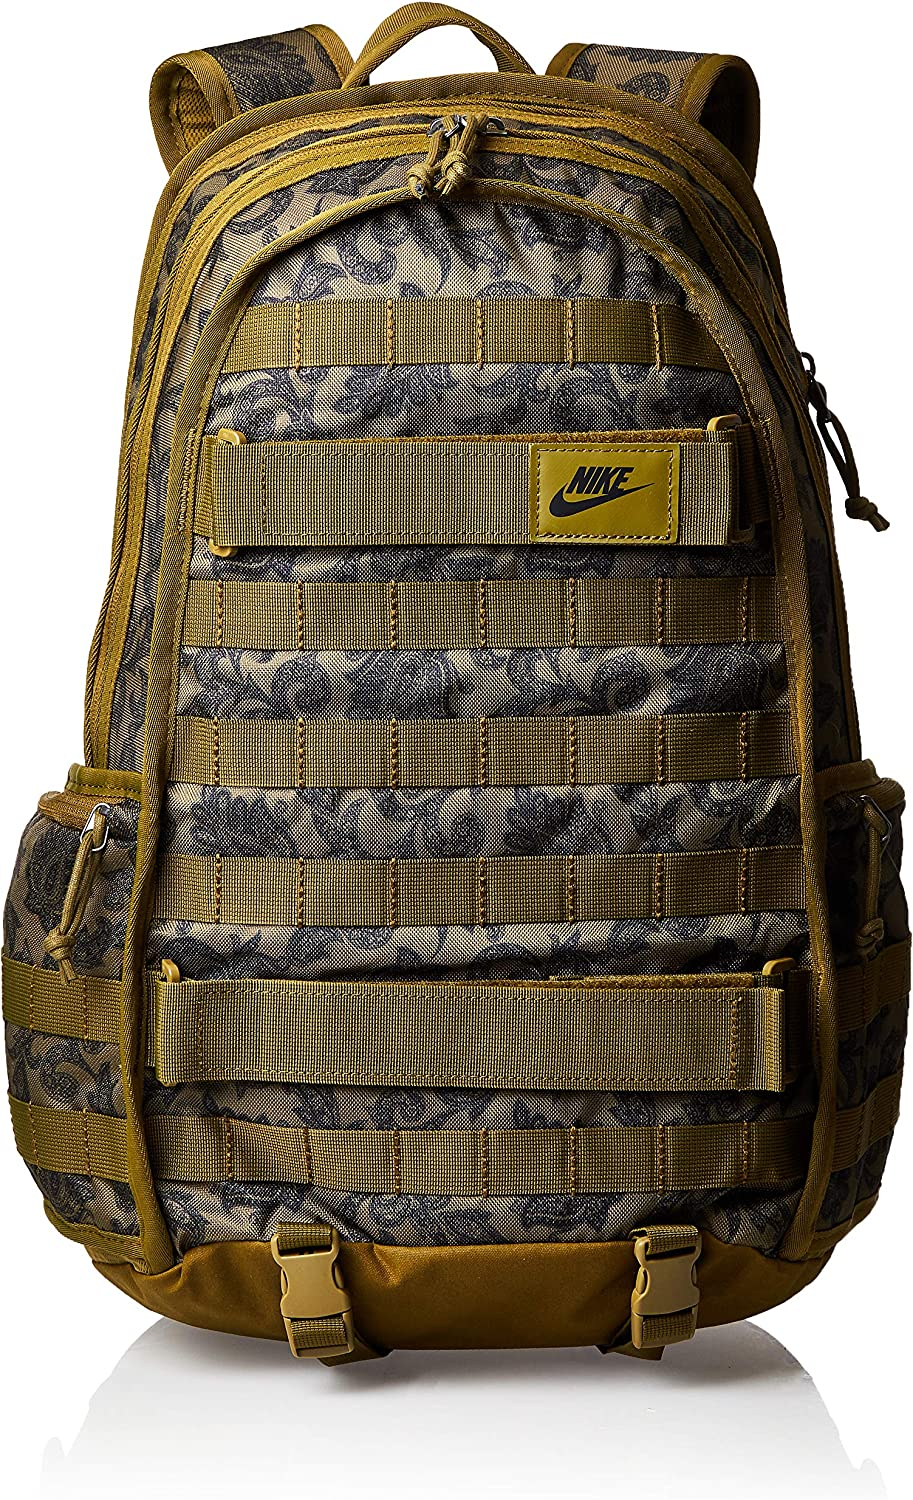 Nike Sportswear RPM Printed Backpack Olive Flak Black